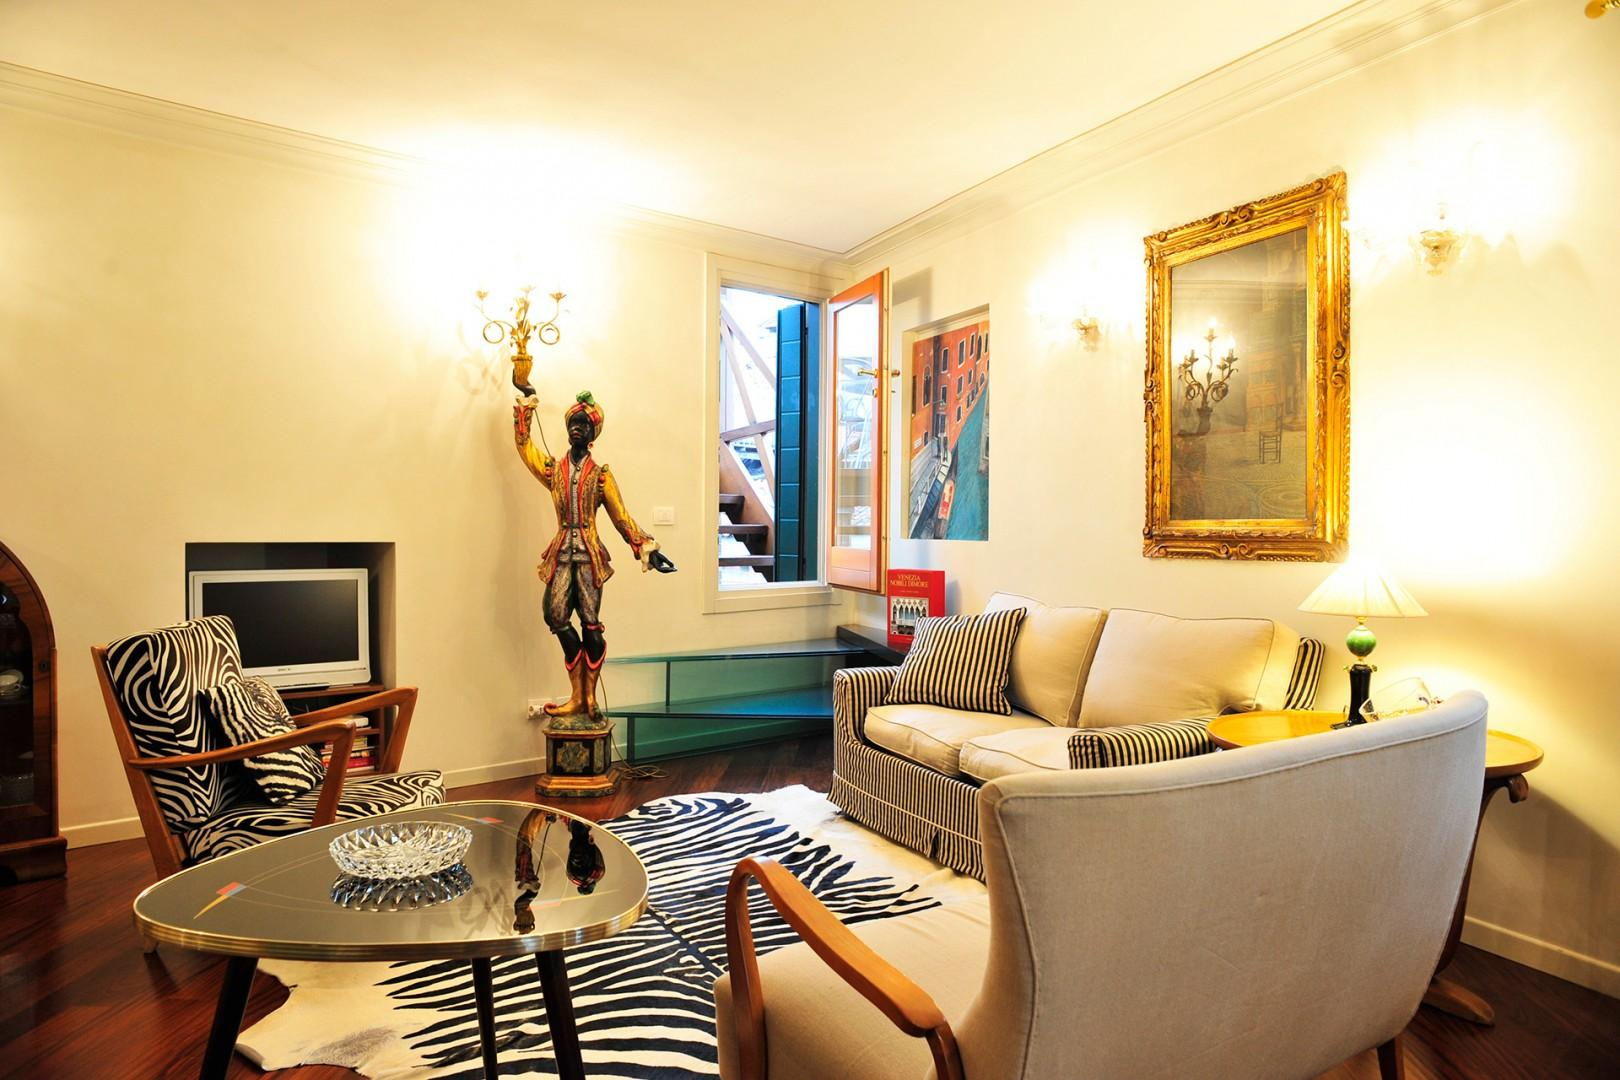 Eclectic decorating echoes Venice's former domination of the Mediterranean trade route.